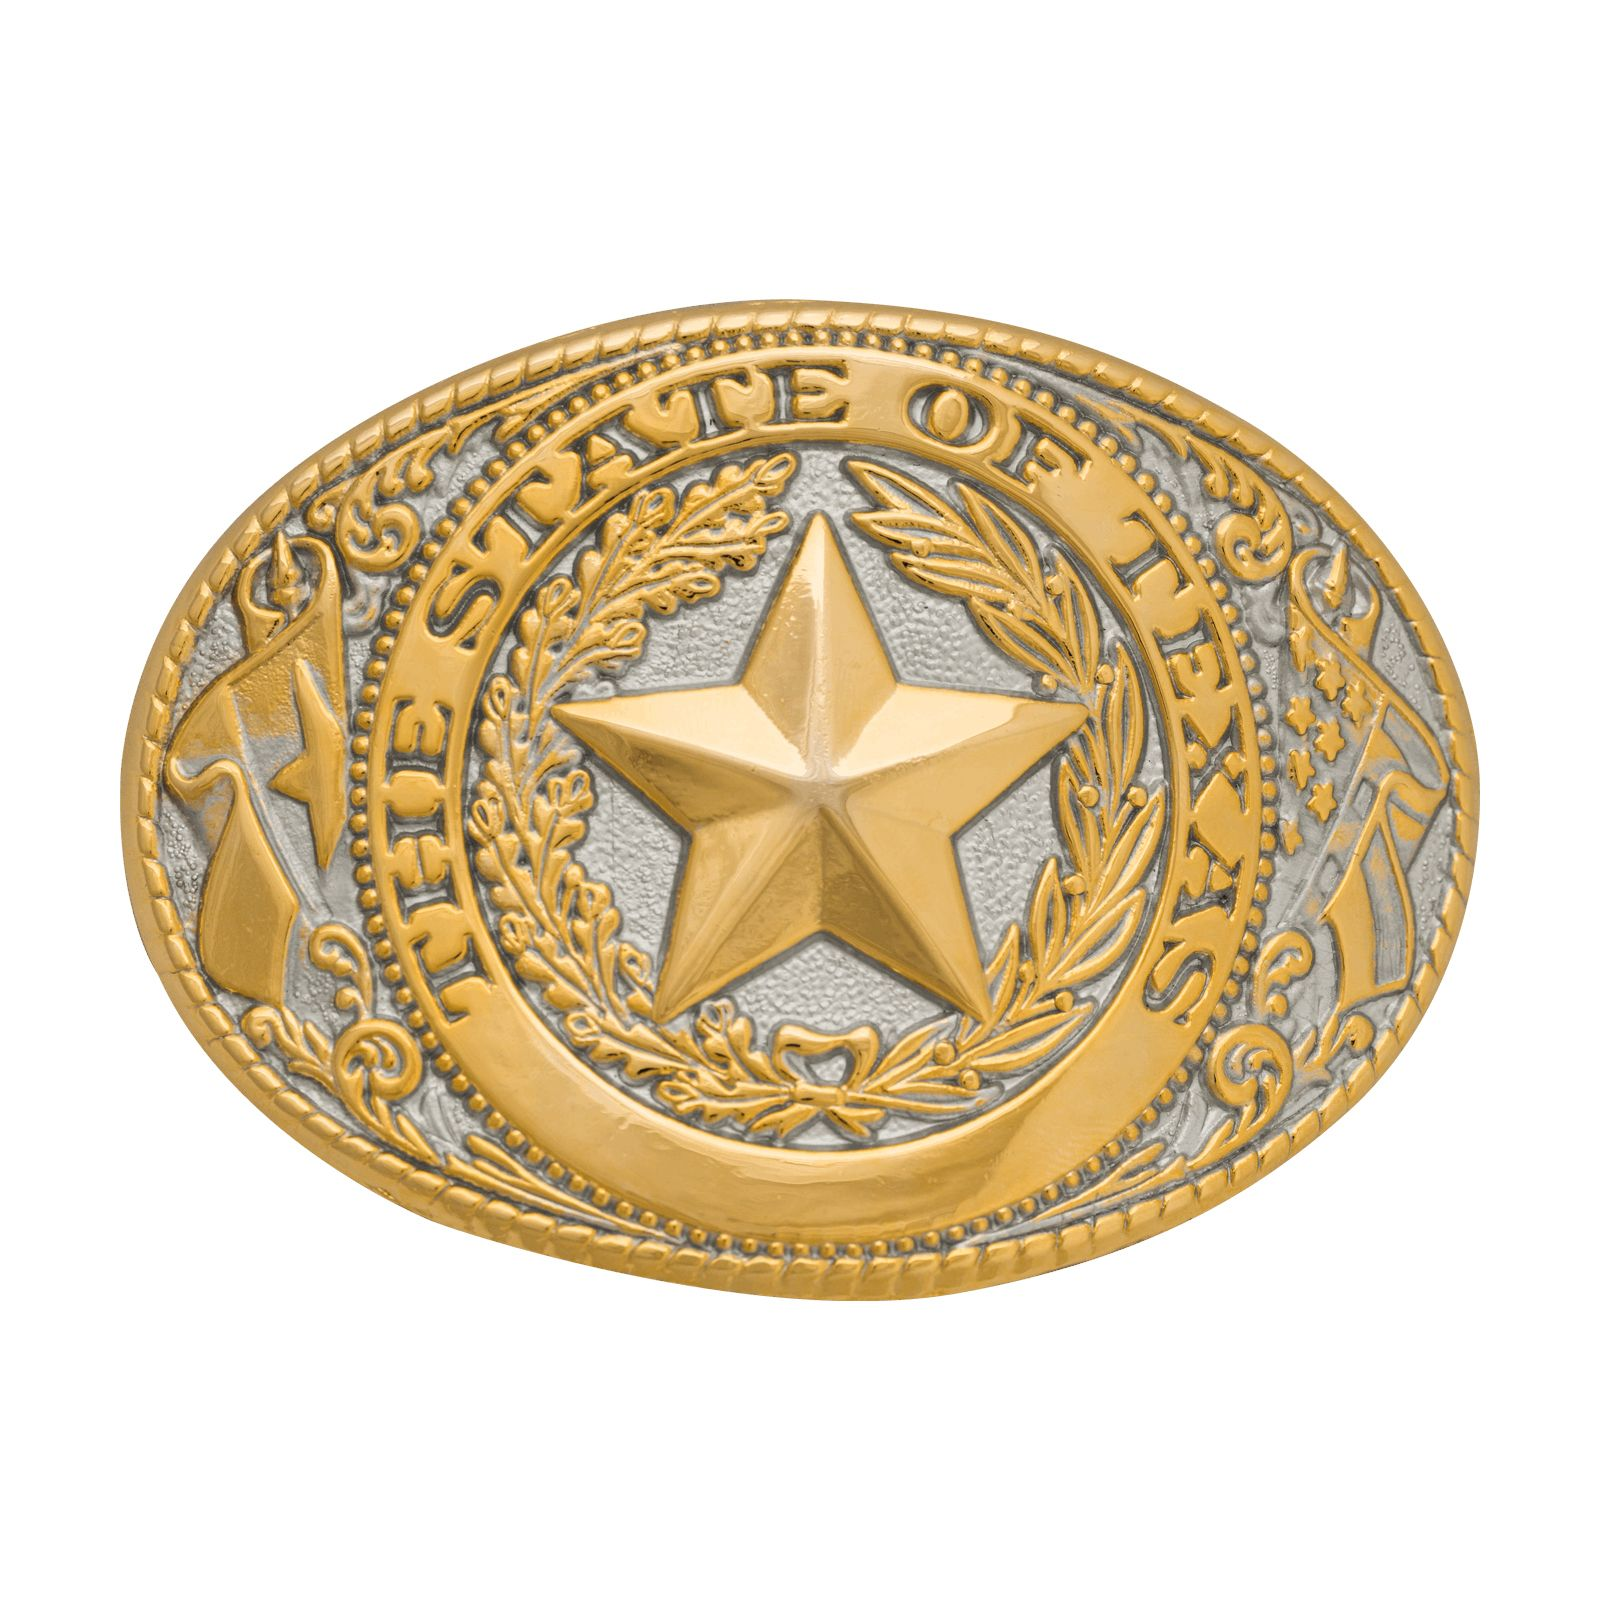 Texas State Seal Gold and Silver Tone Belt Buckle